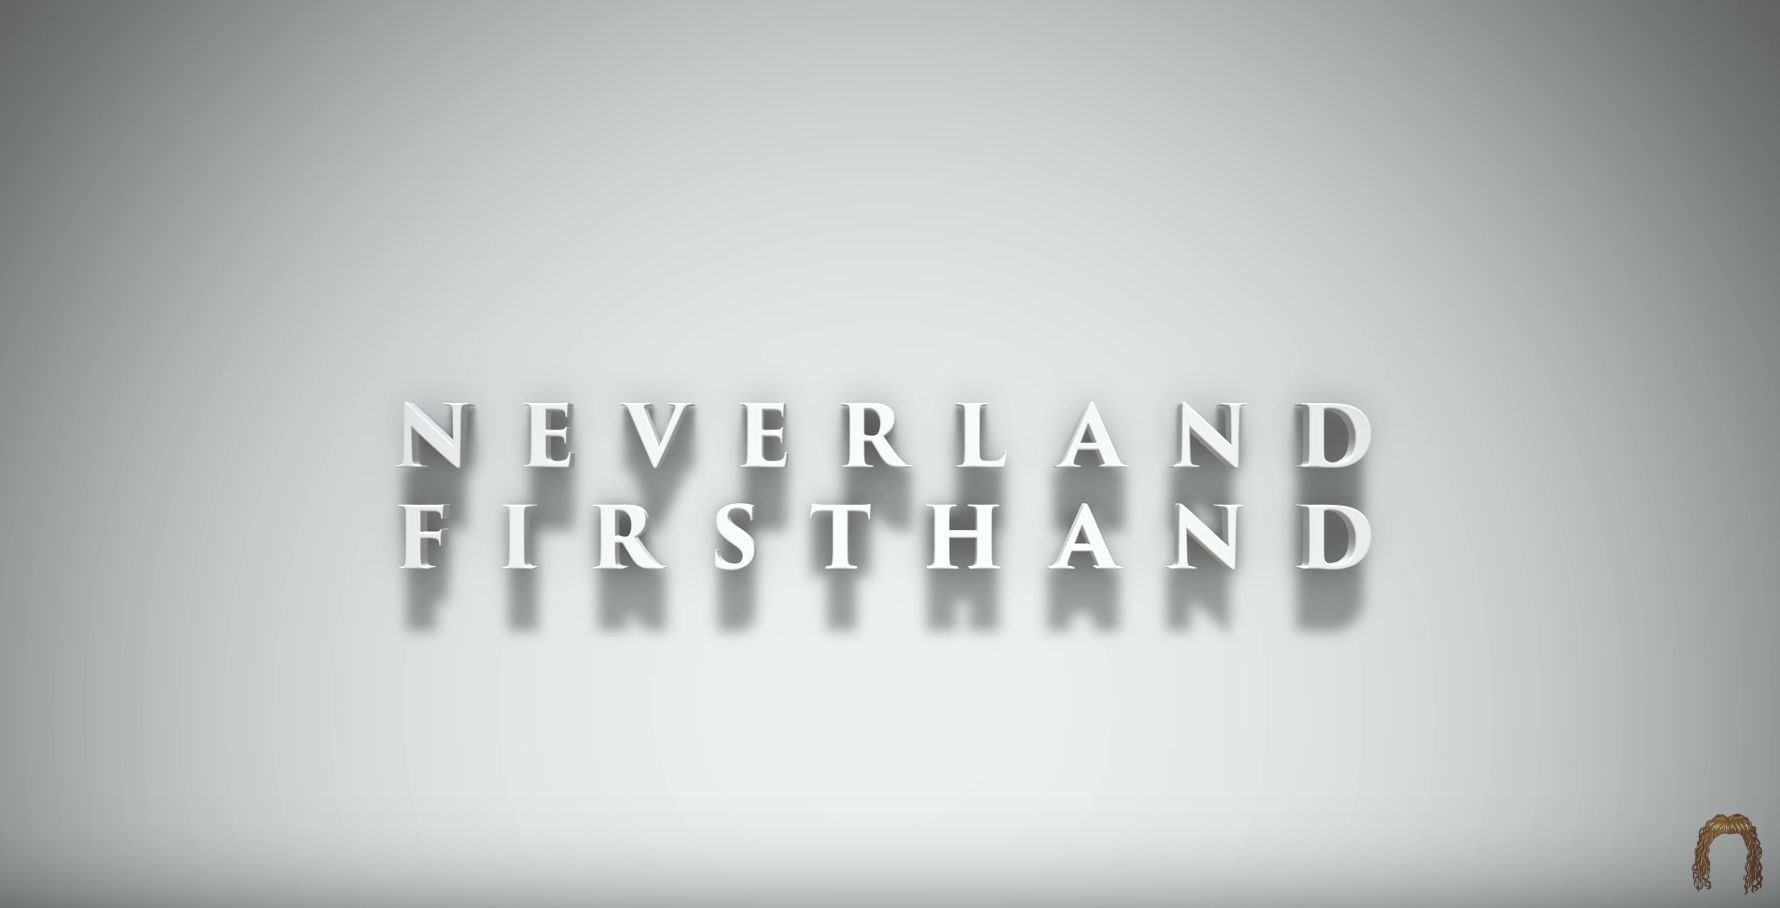 Image may contain: Neverland Firsthand, Michael Jackson, family, documentary, watch, Leaving Neverland, Number, Symbol, Word, Alphabet, Text